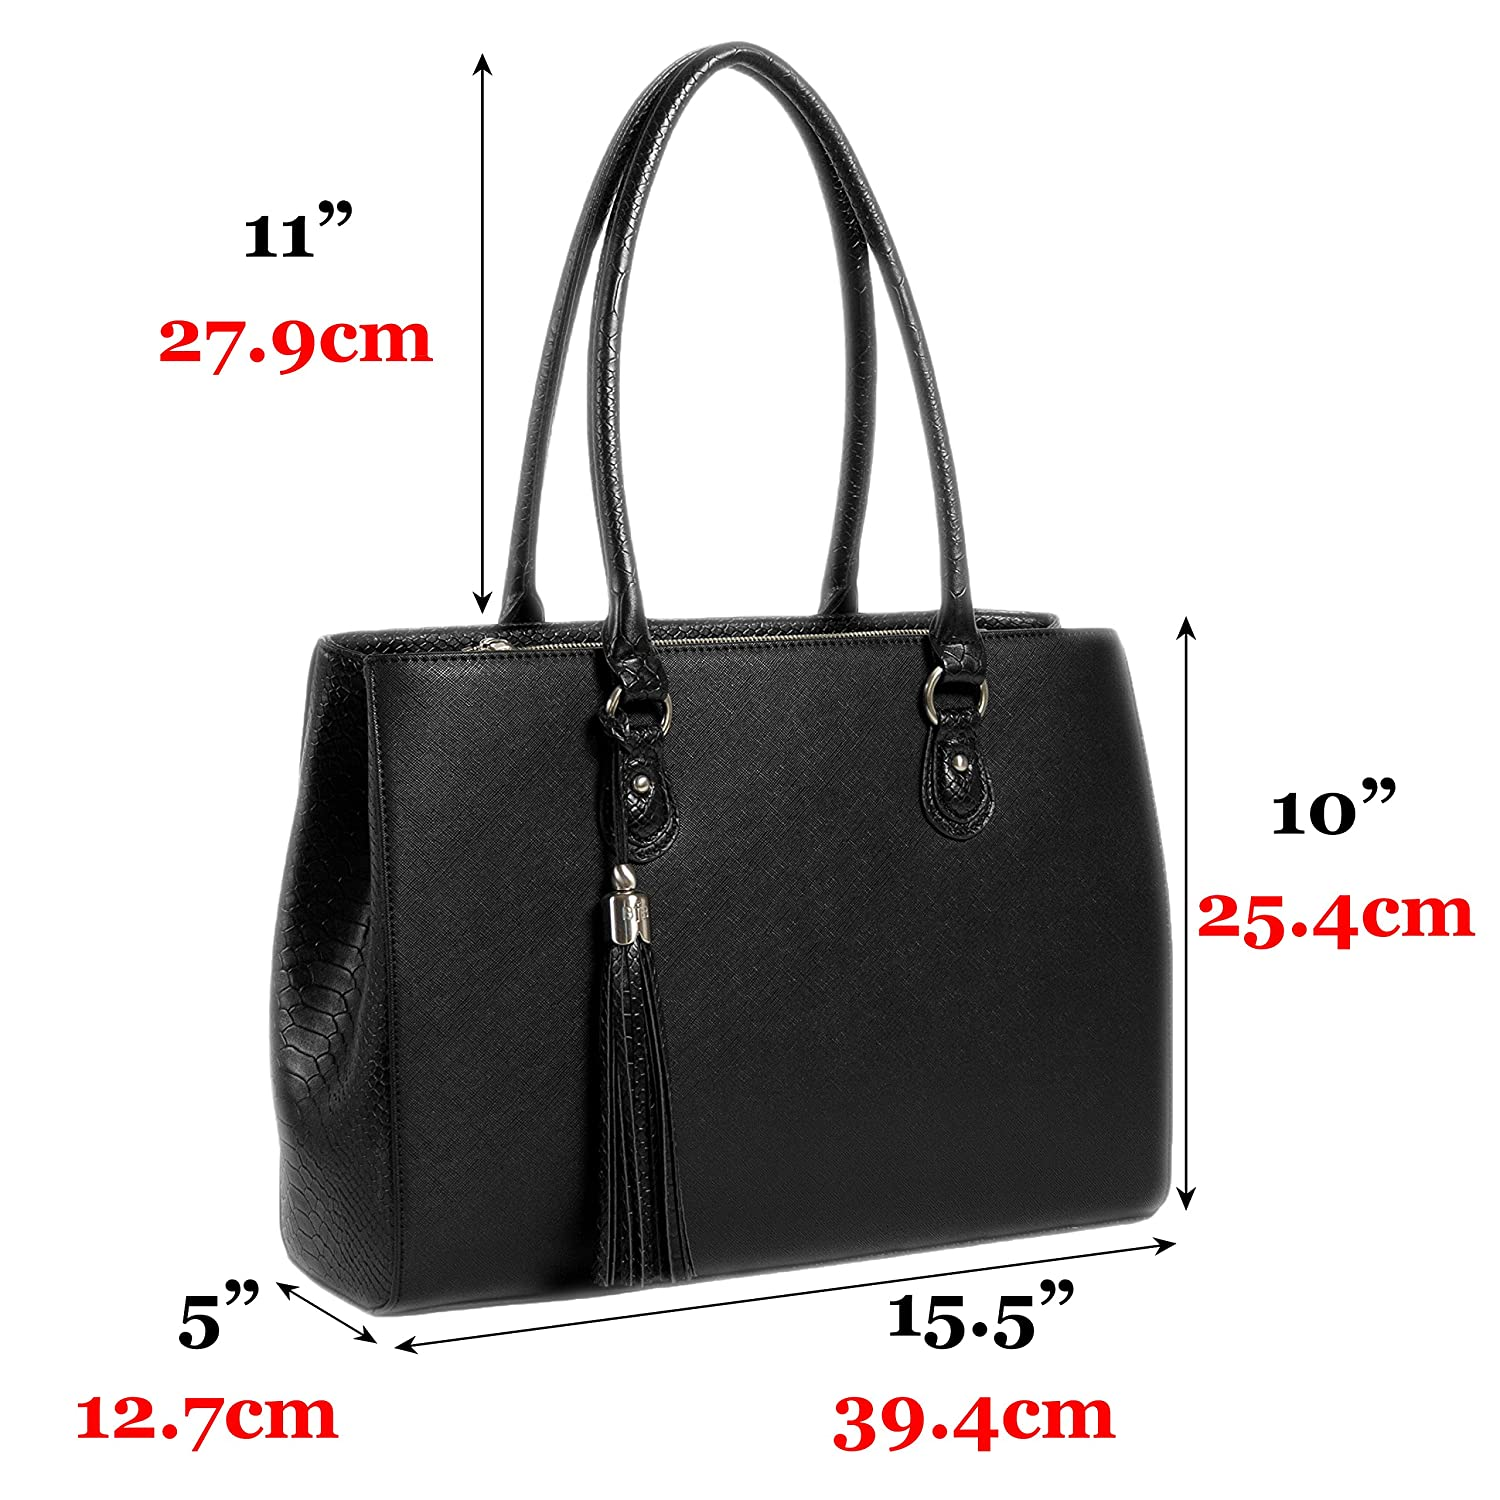 Lightweight Handmade Designer Work Tote Black My Best Friend is a Bag 5773738 BFB Laptop Tote and Tablet Bag